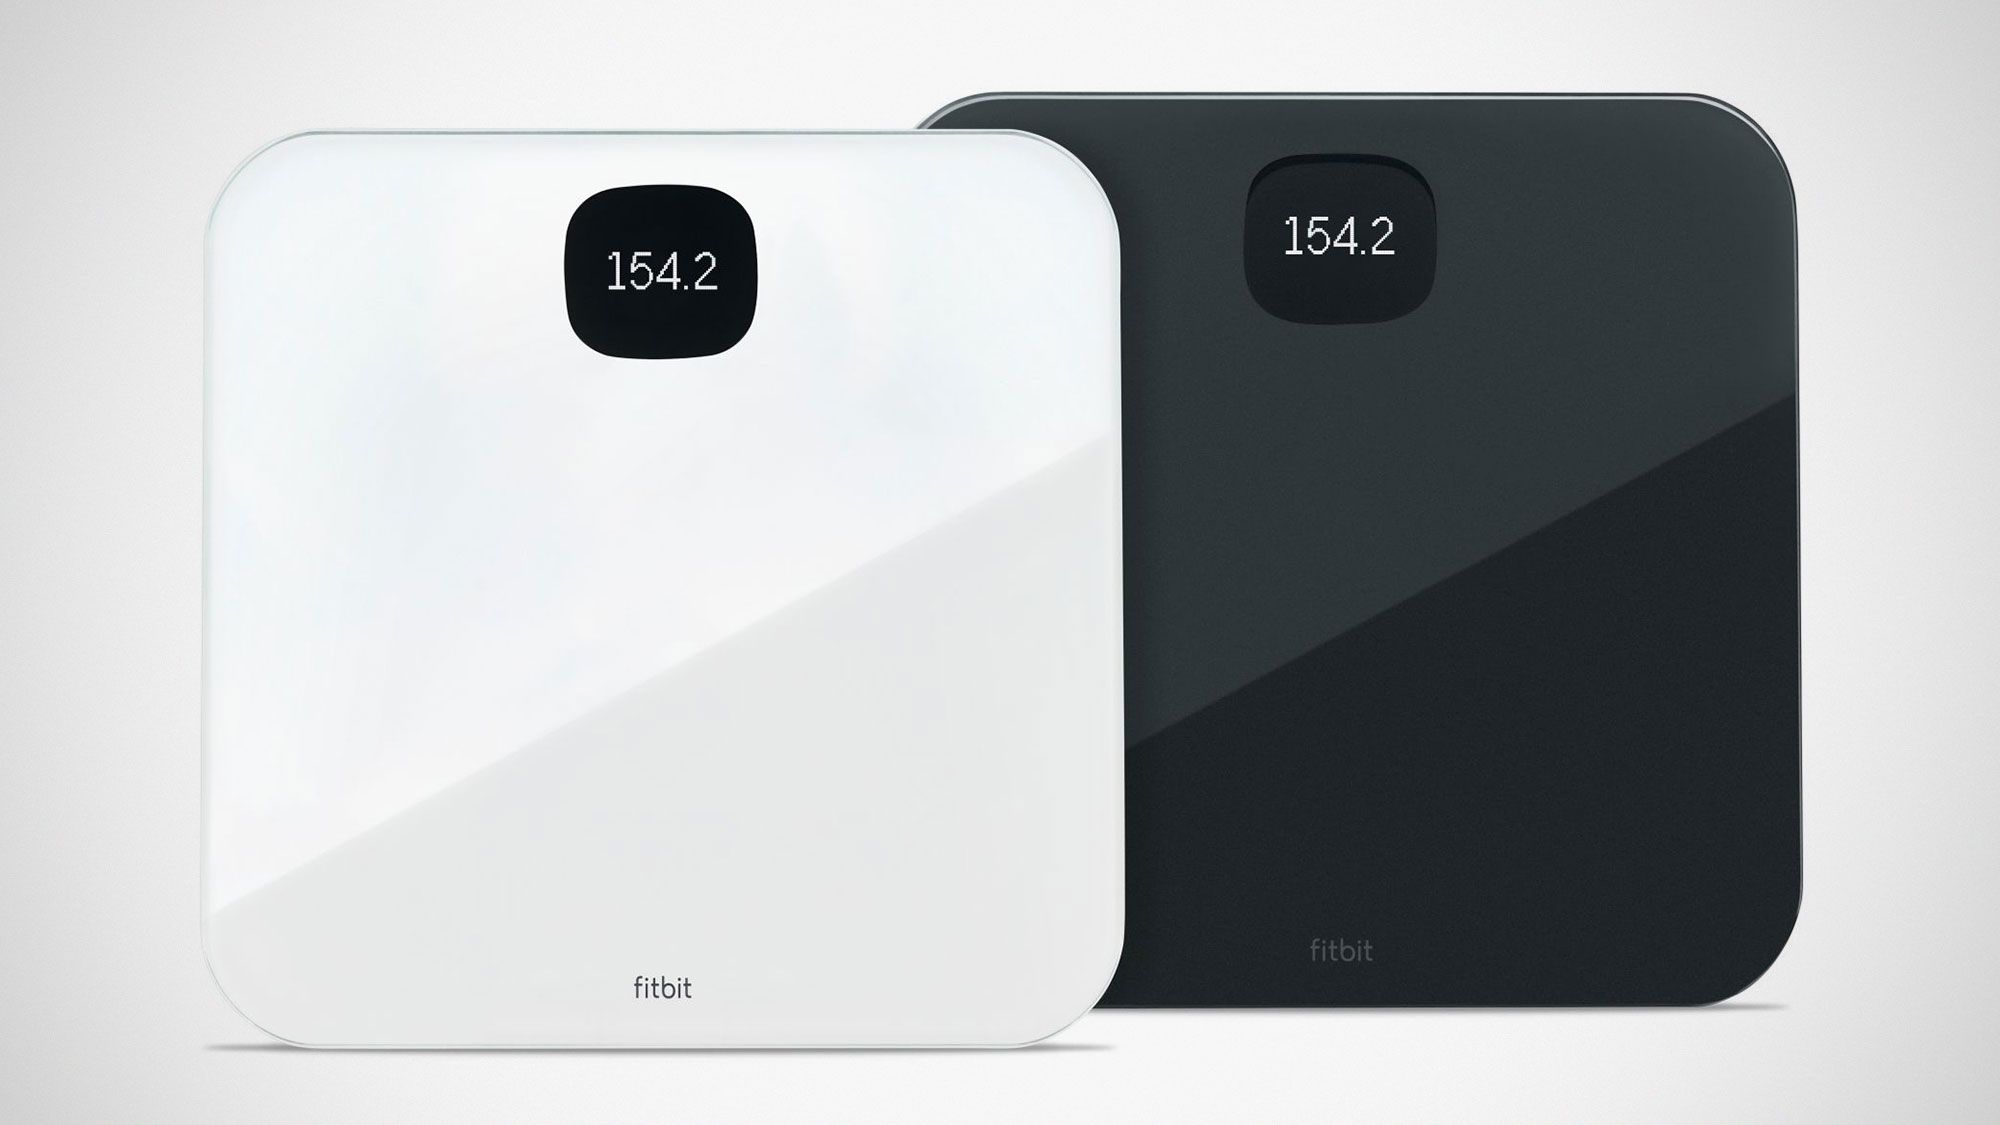 Fitbit Aria Air Smart Weighing Scale Weighing scale